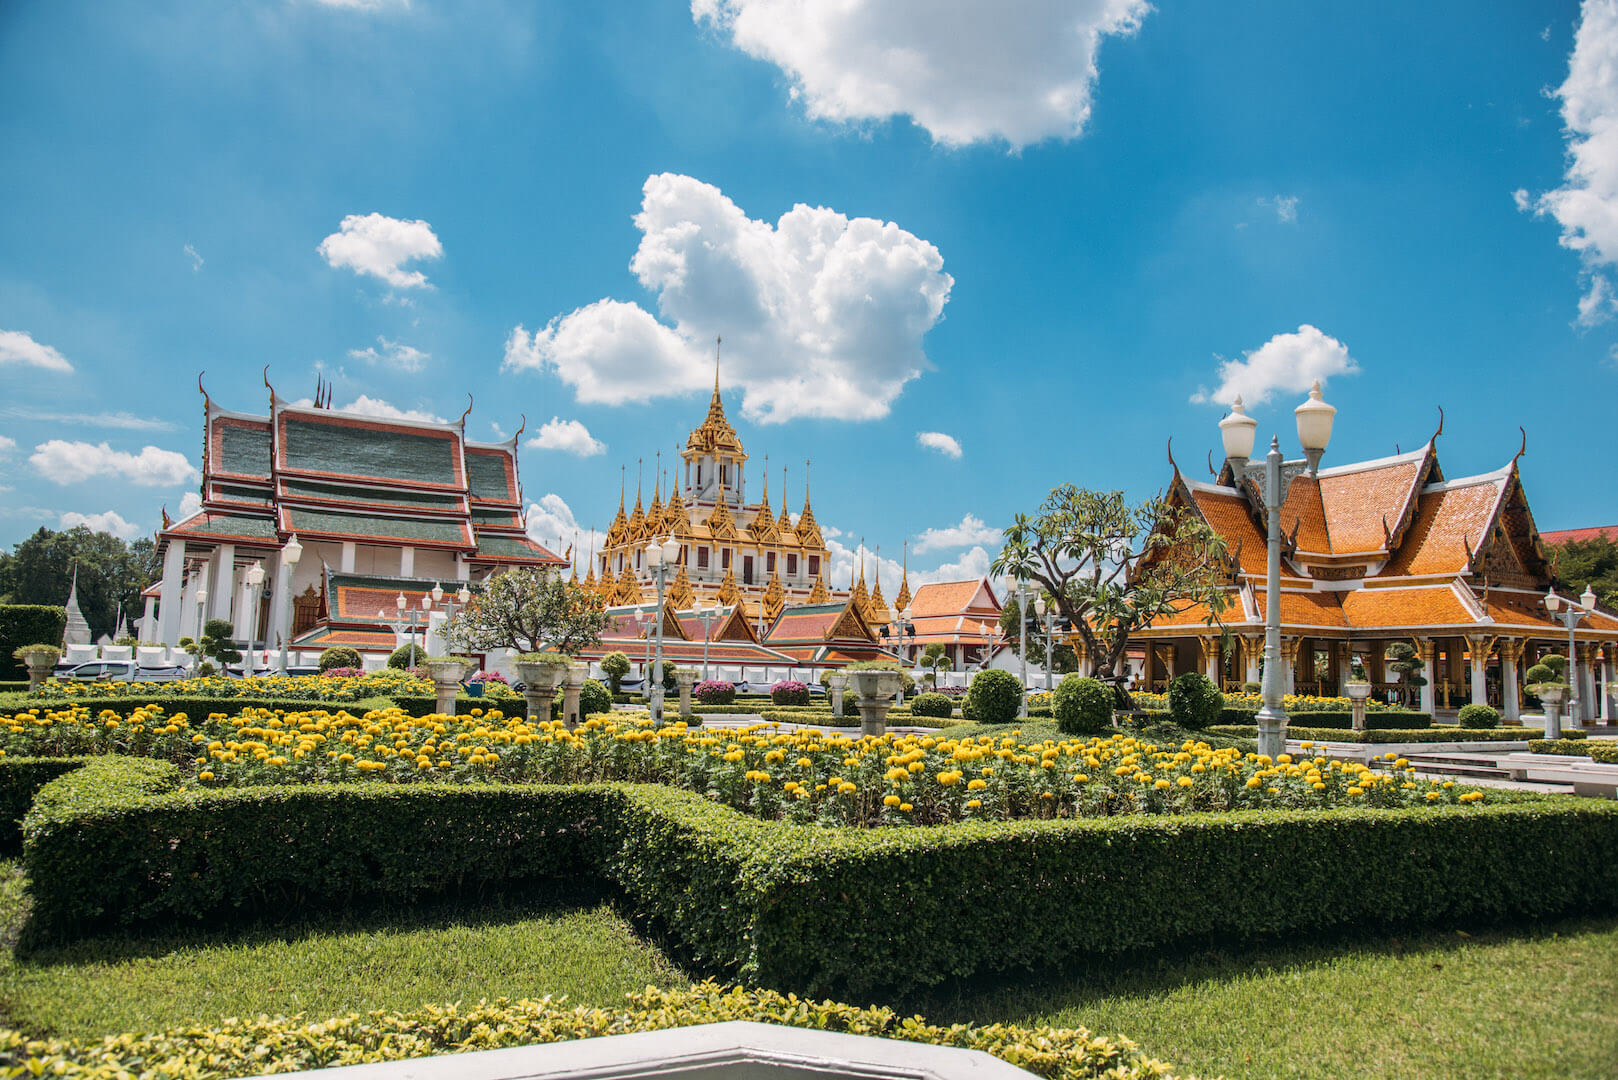 thailand bangkok palace temple clouds sky flowers